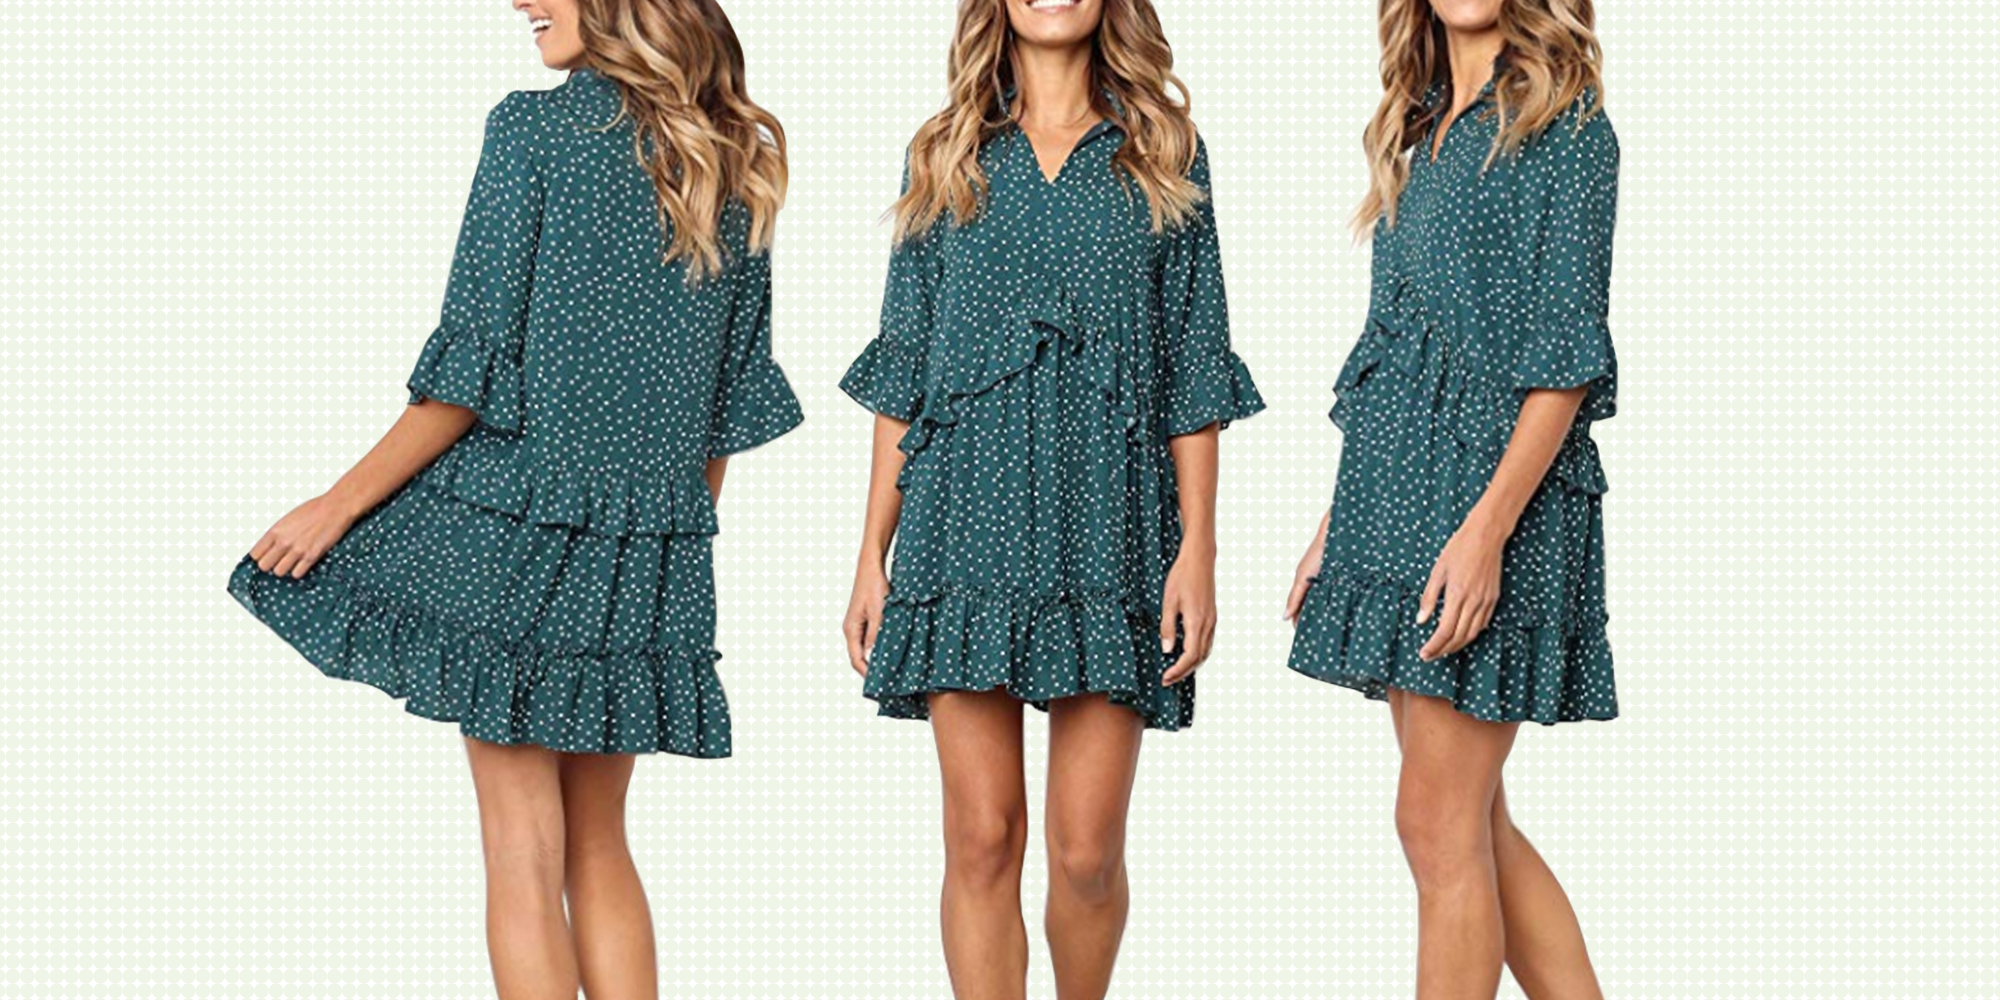 This $25 Dress on Amazon Is Perfect for Transitioning to Fall